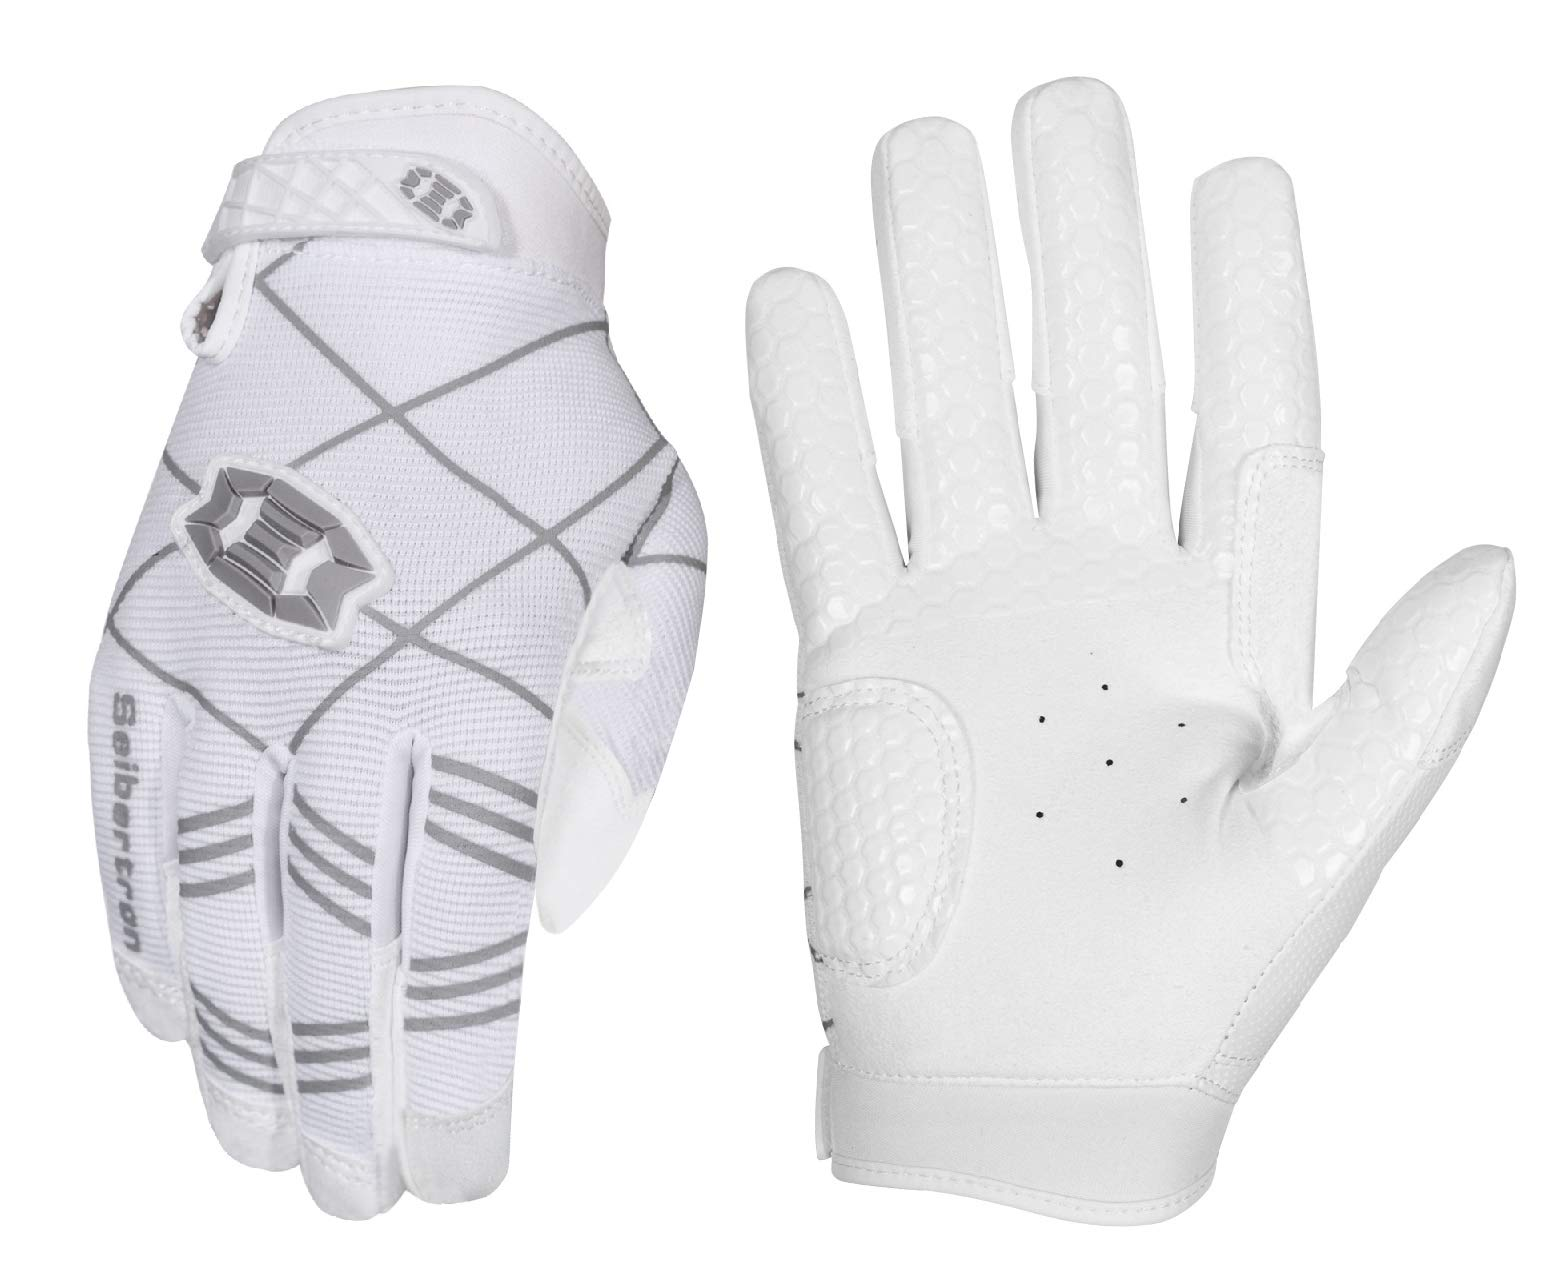 Seibertron B-A-R PRO 2.0 Signature Baseball/Softball Batting Gloves Super Grip Finger Fit for Youth (White,XS)